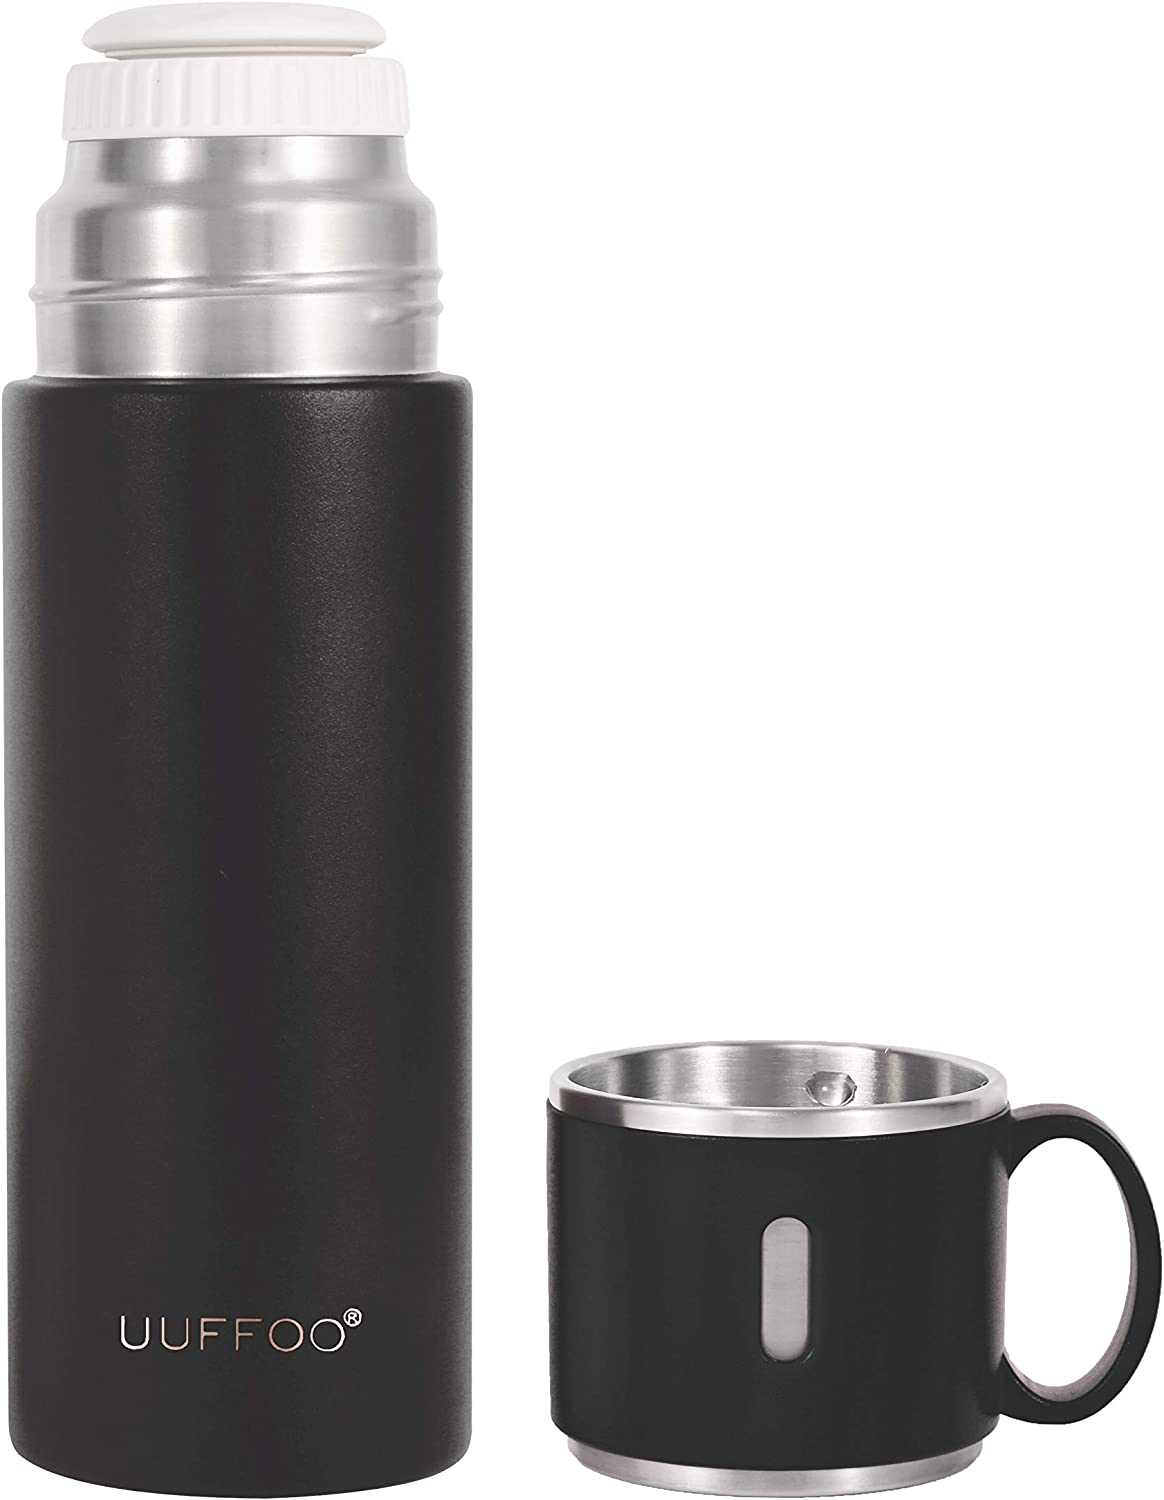 Thermoses At the price of surprise Mug with Coffee Vacuum Insulated Price reduction Steel Stainless T